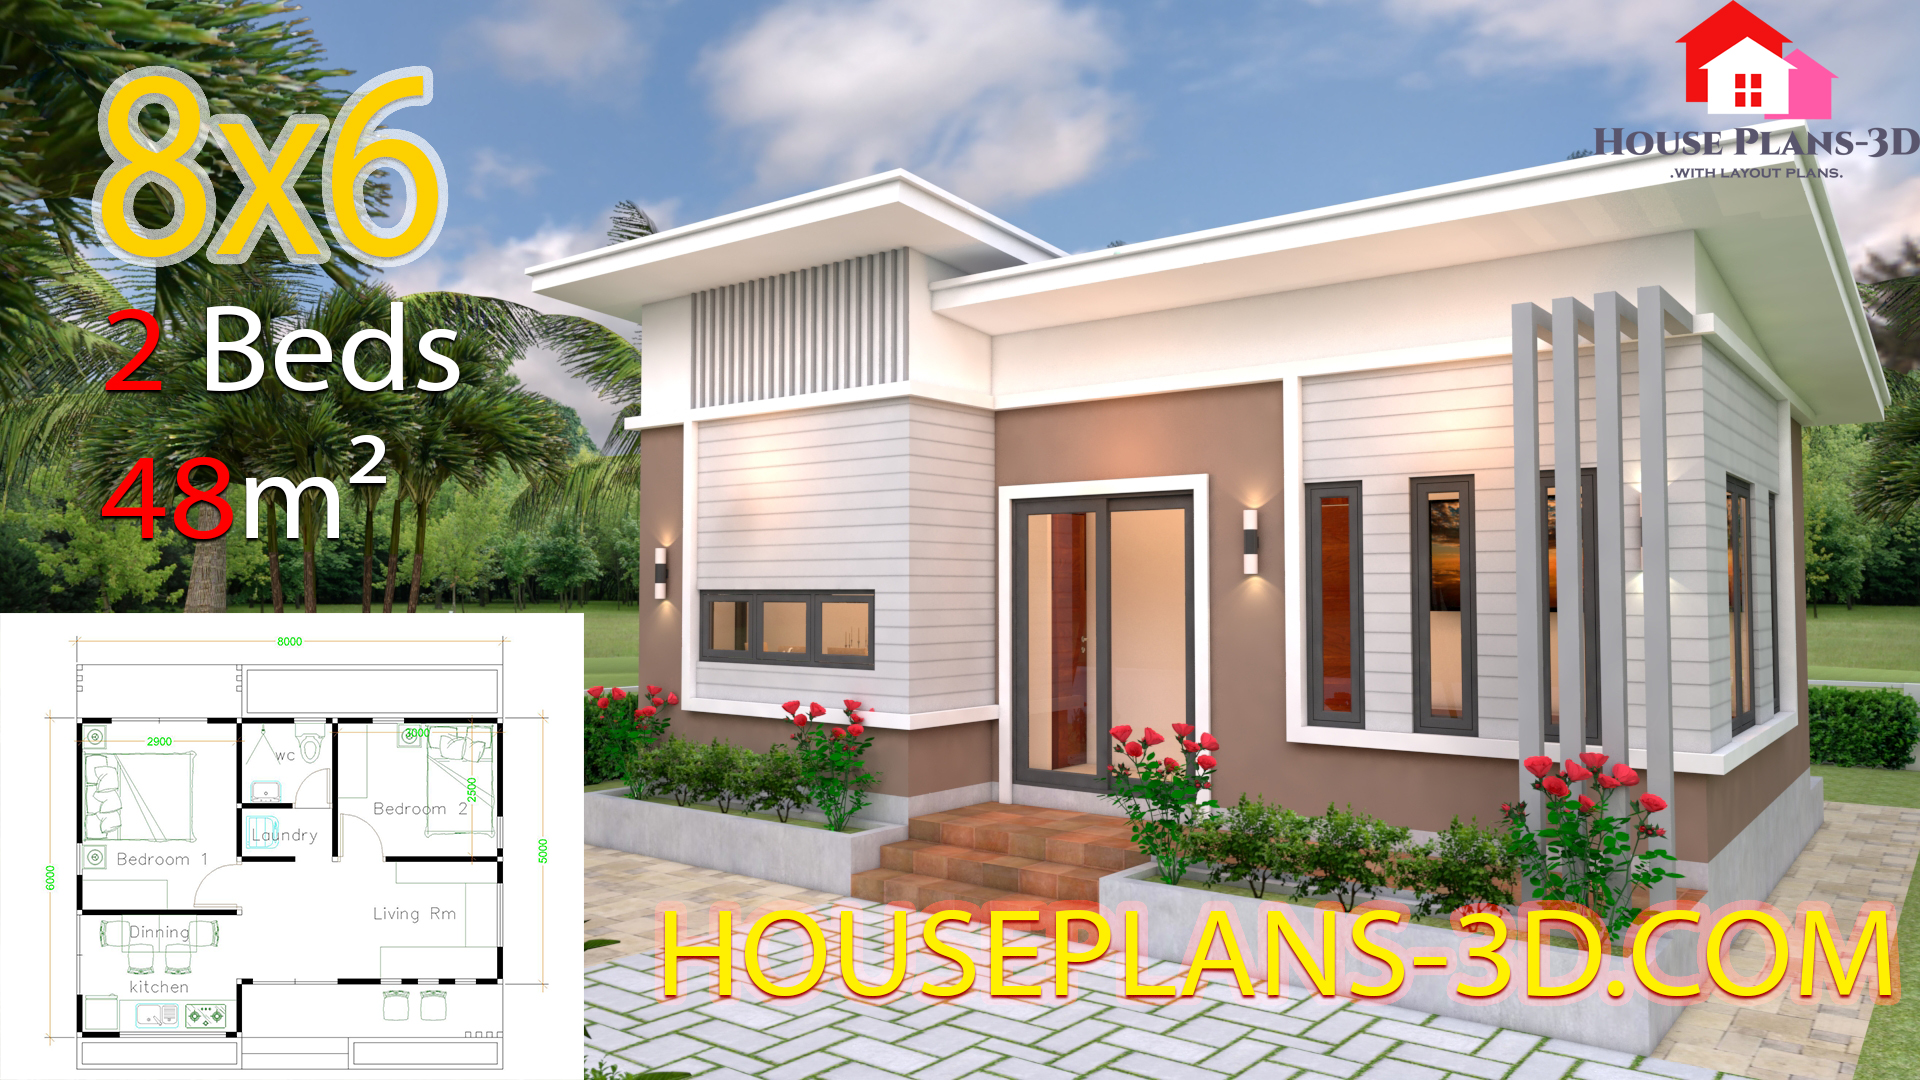 House Plans 8x6 with 2 Bedrooms Slope roof - House Plans 3D